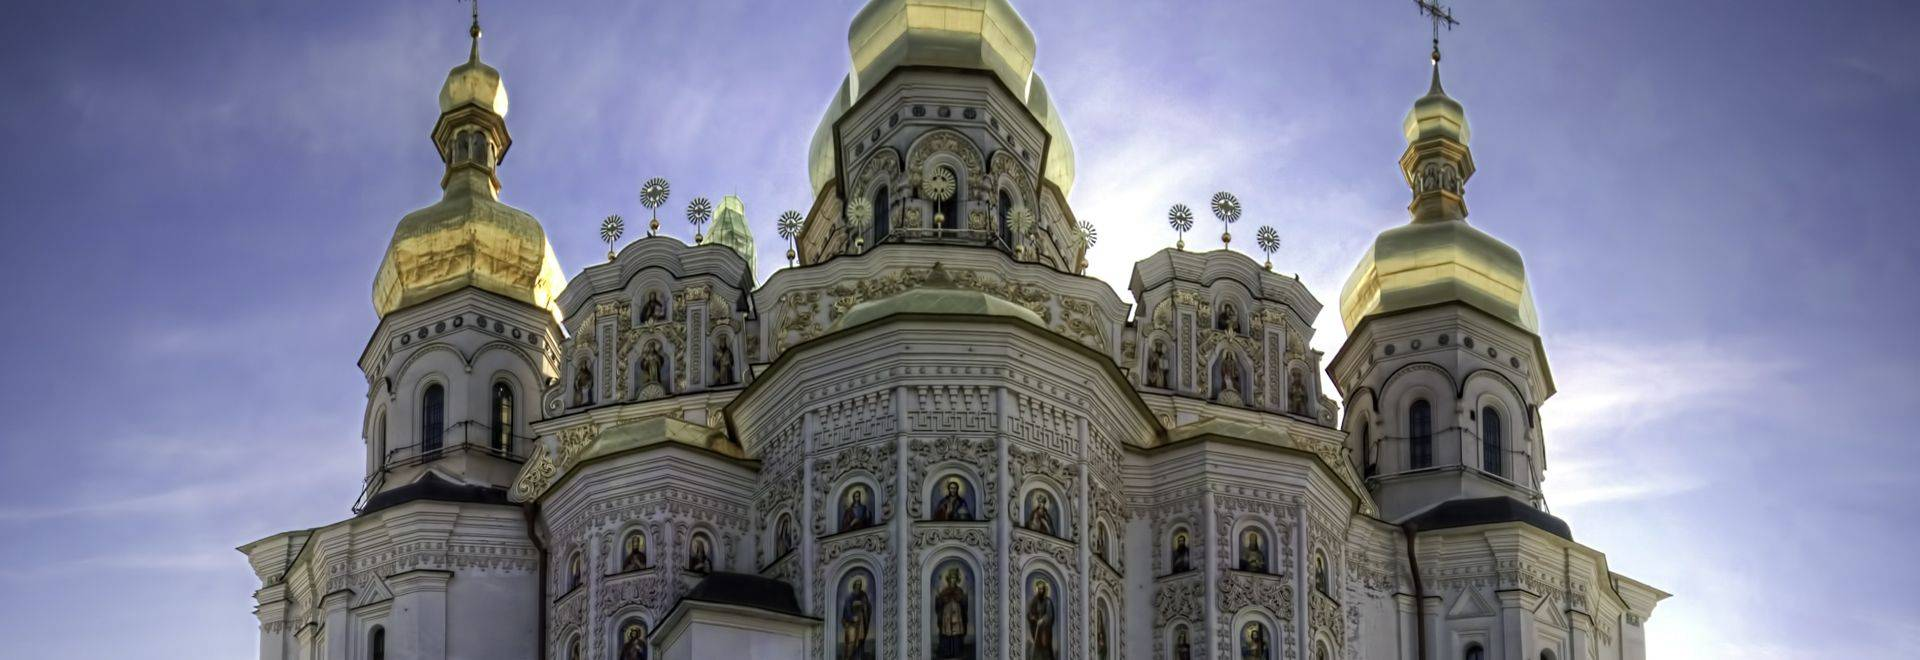 This is Dormition Cathedral at Kiev Pechersk Lavra in Kiev.